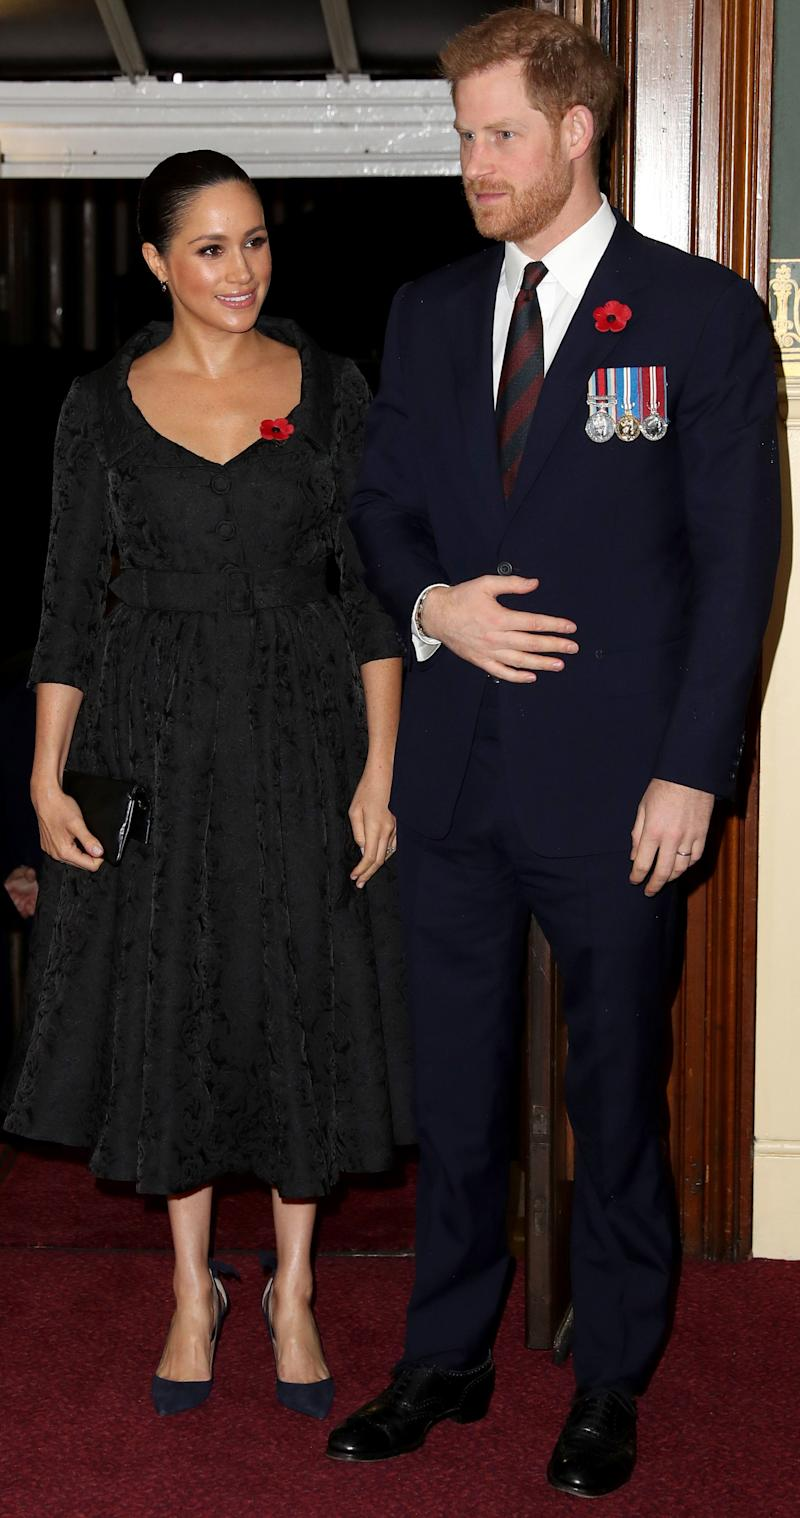 Meghan Markle and Prince Harry in London on November 9, 2019 before their trip